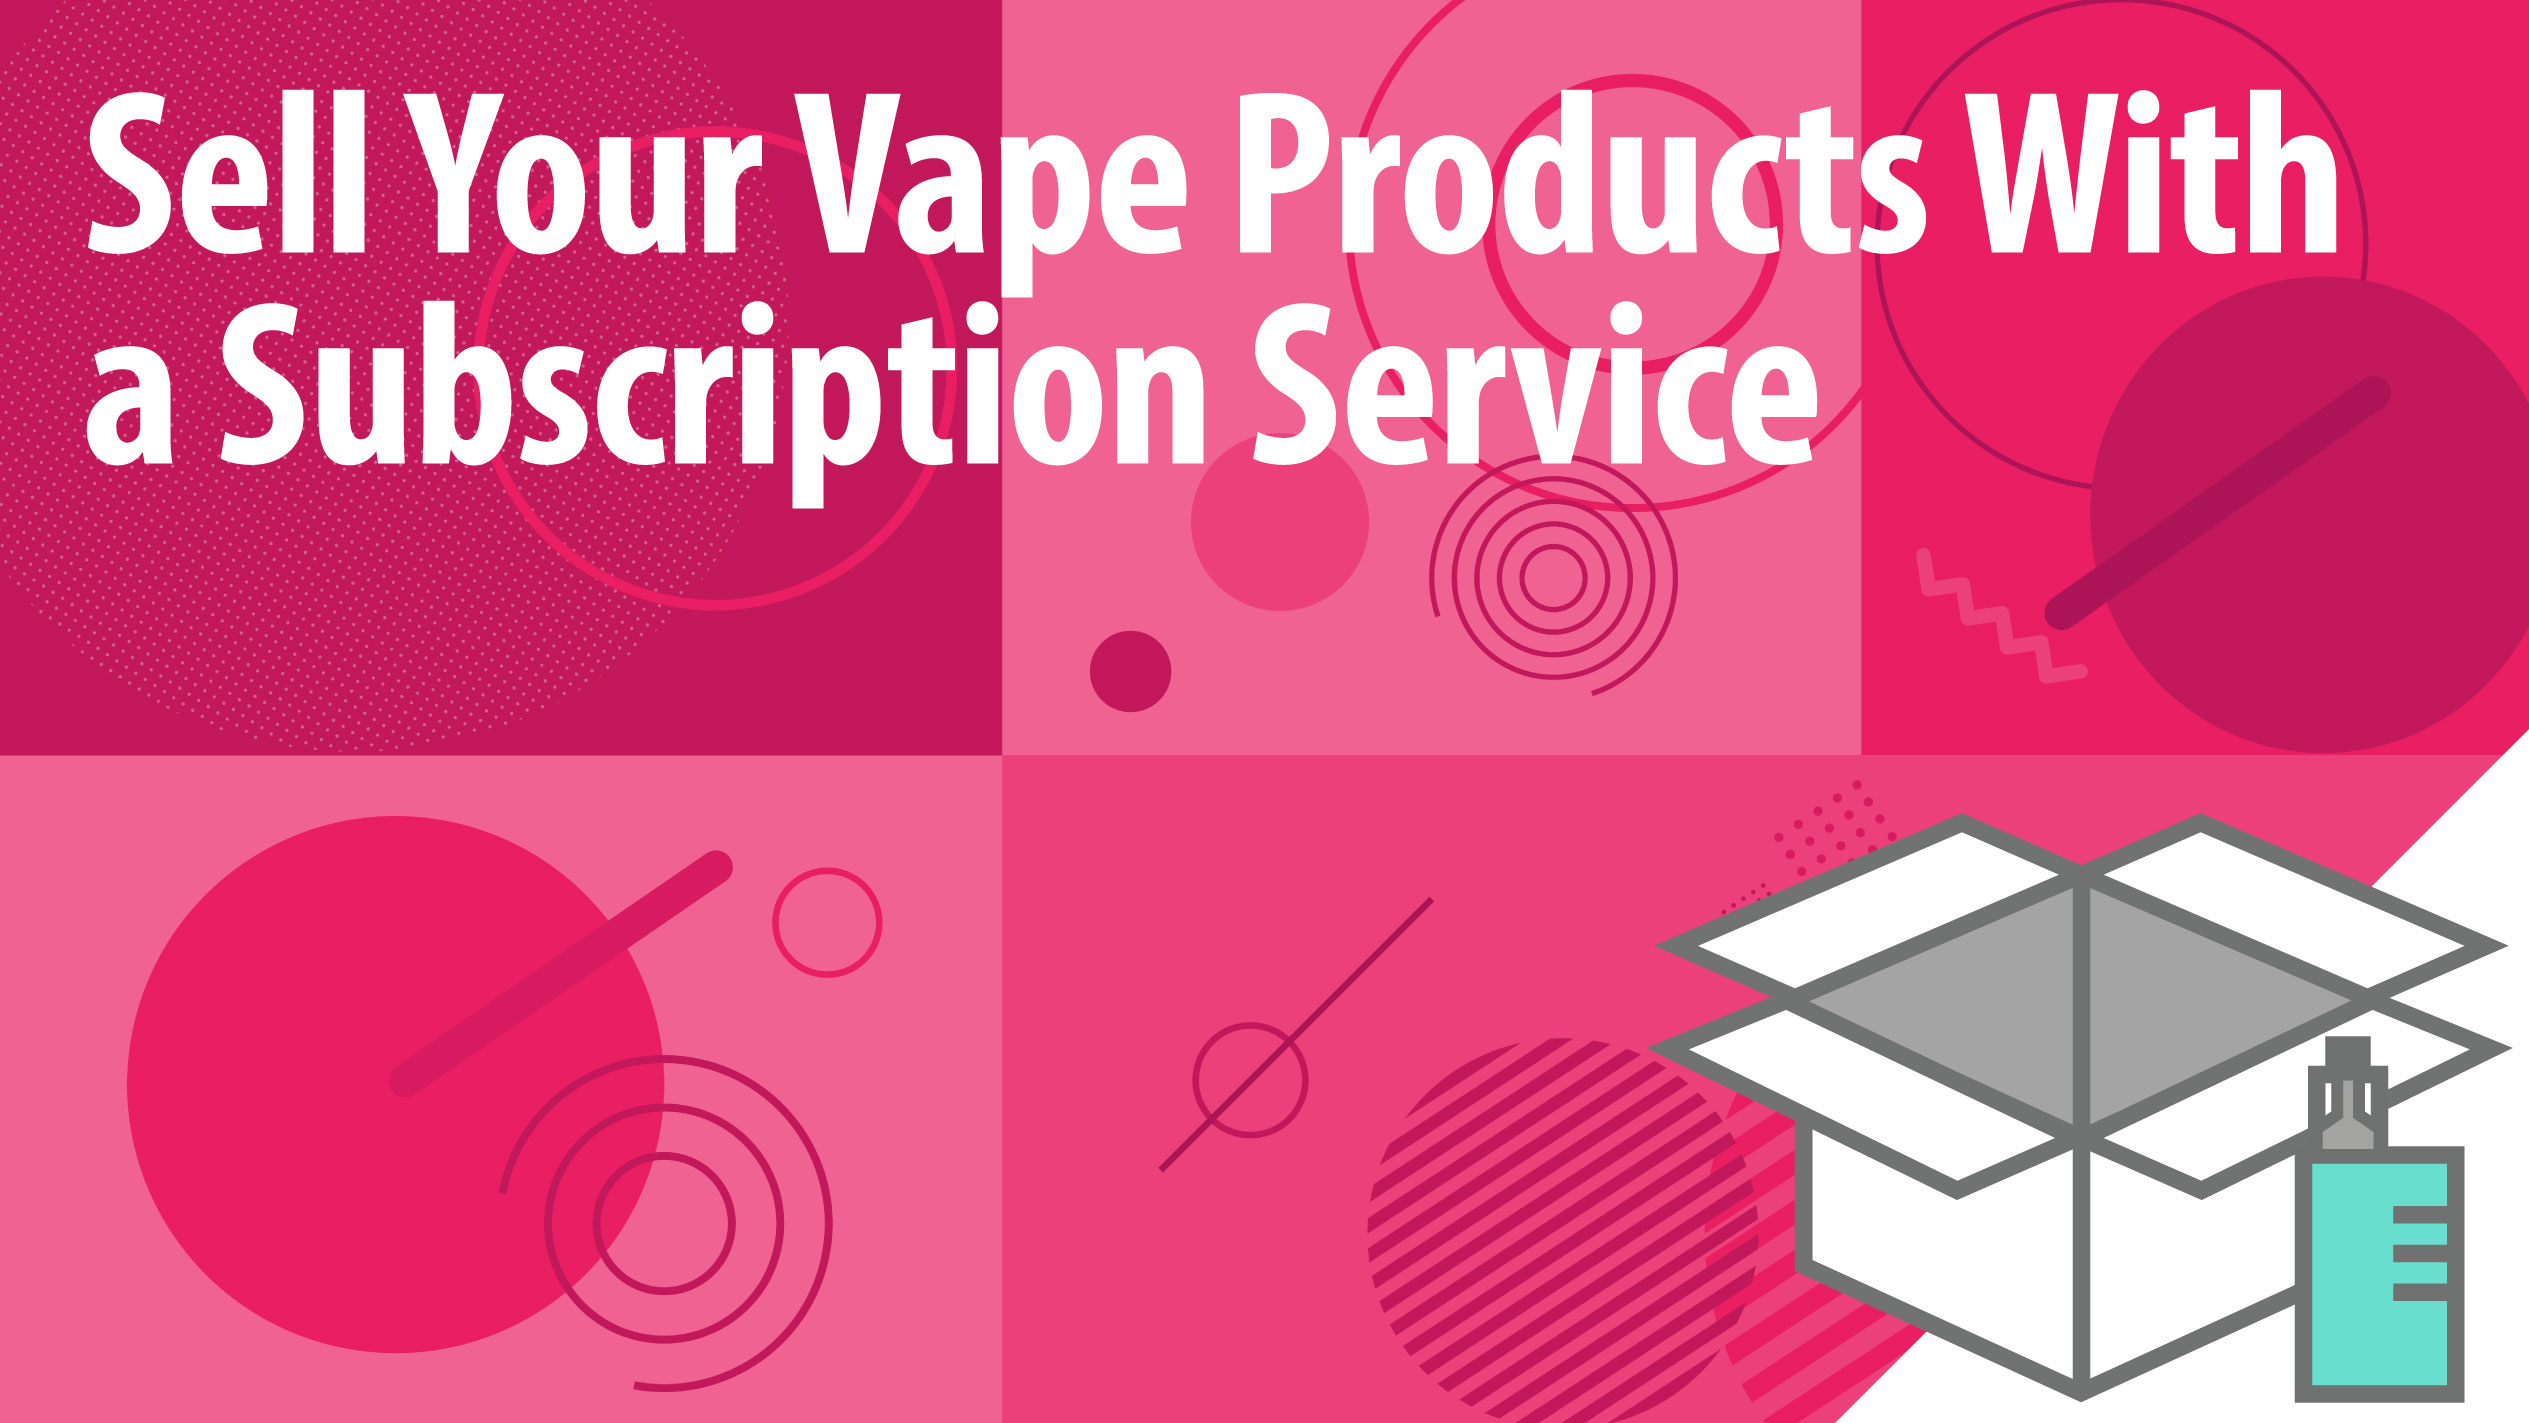 Sell Your Vape Products With a Subscription Service